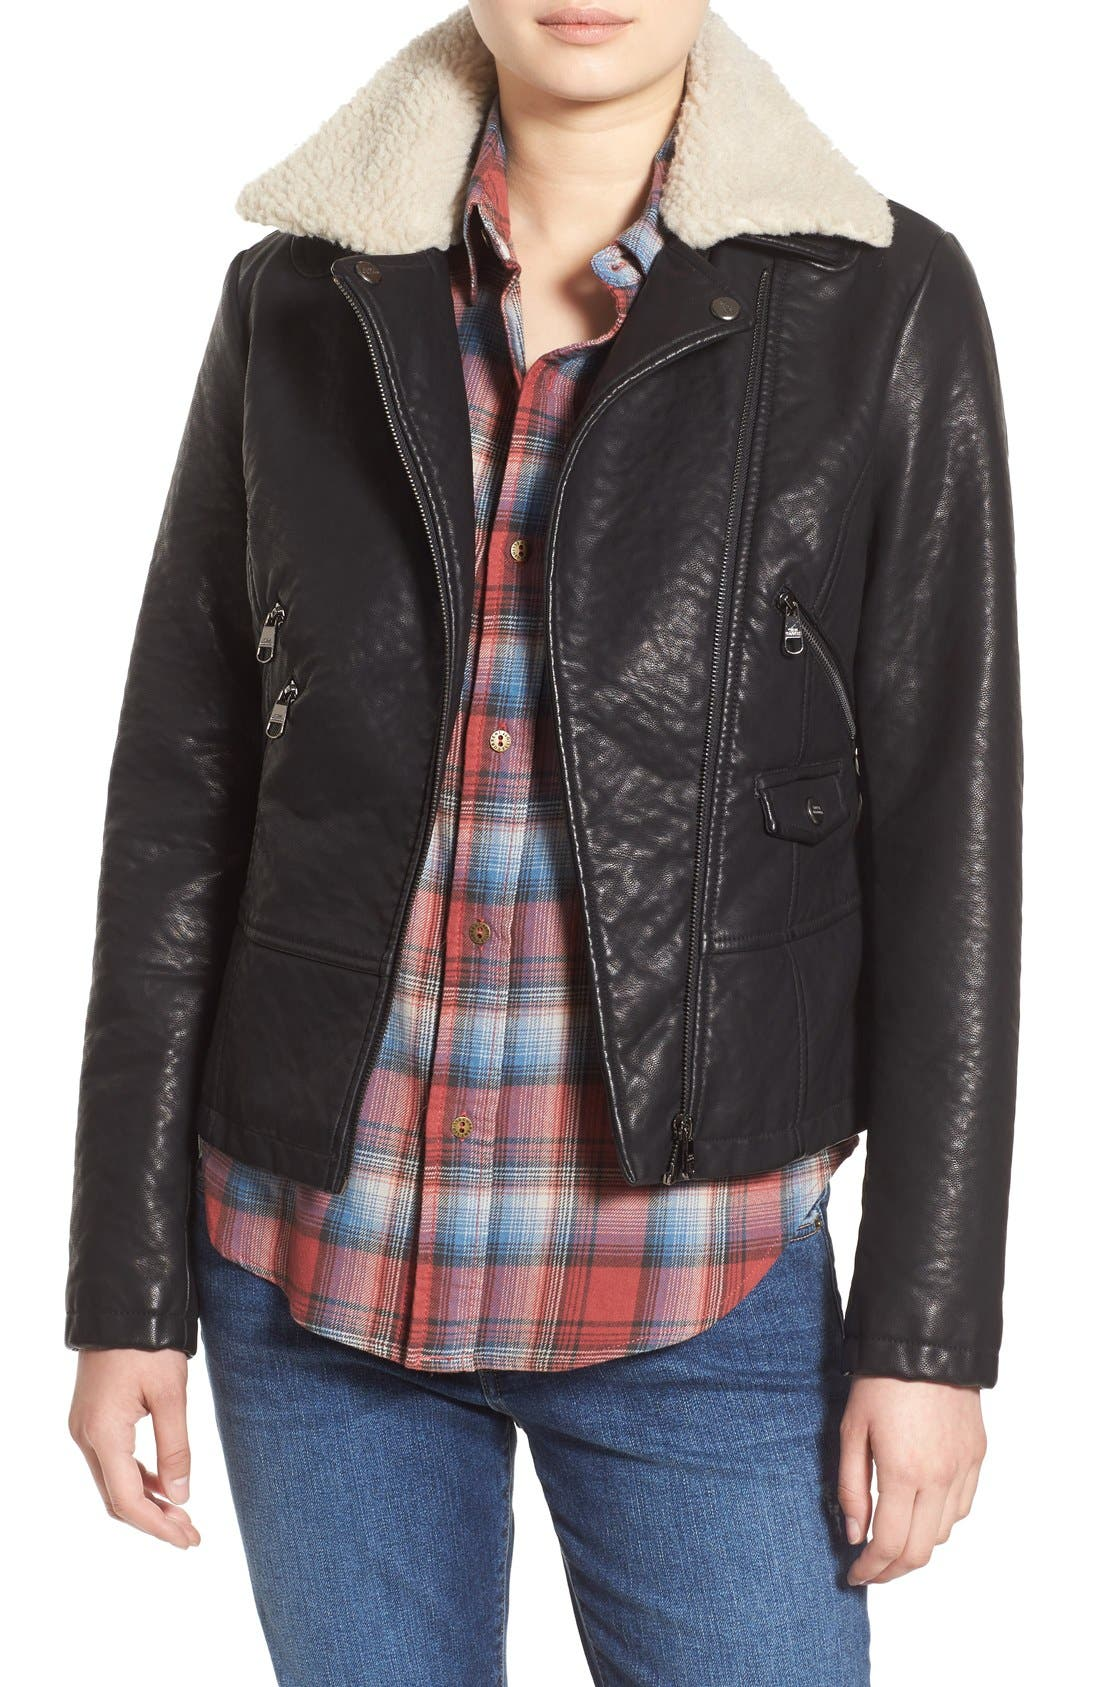 Main Image - Steve Madden Faux Leather Moto Jacket with Faux Shearling Collar